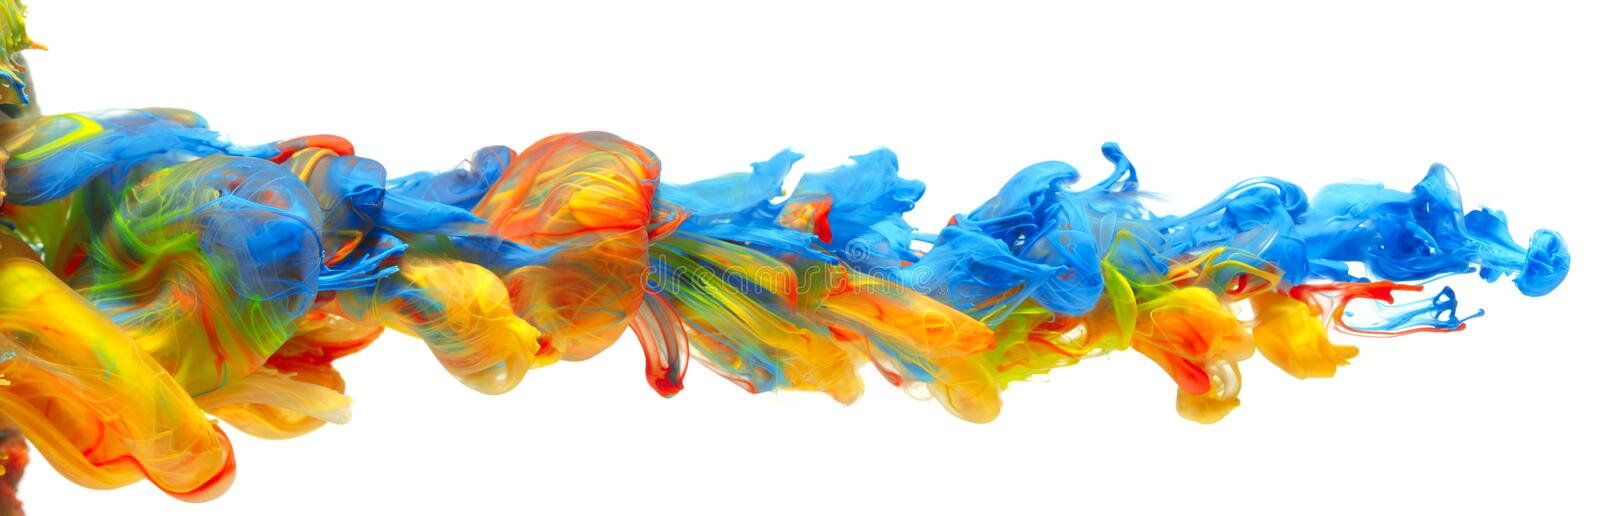 Rainbow of colorful paints and inks together in flowing water abstract background royalty free stock images